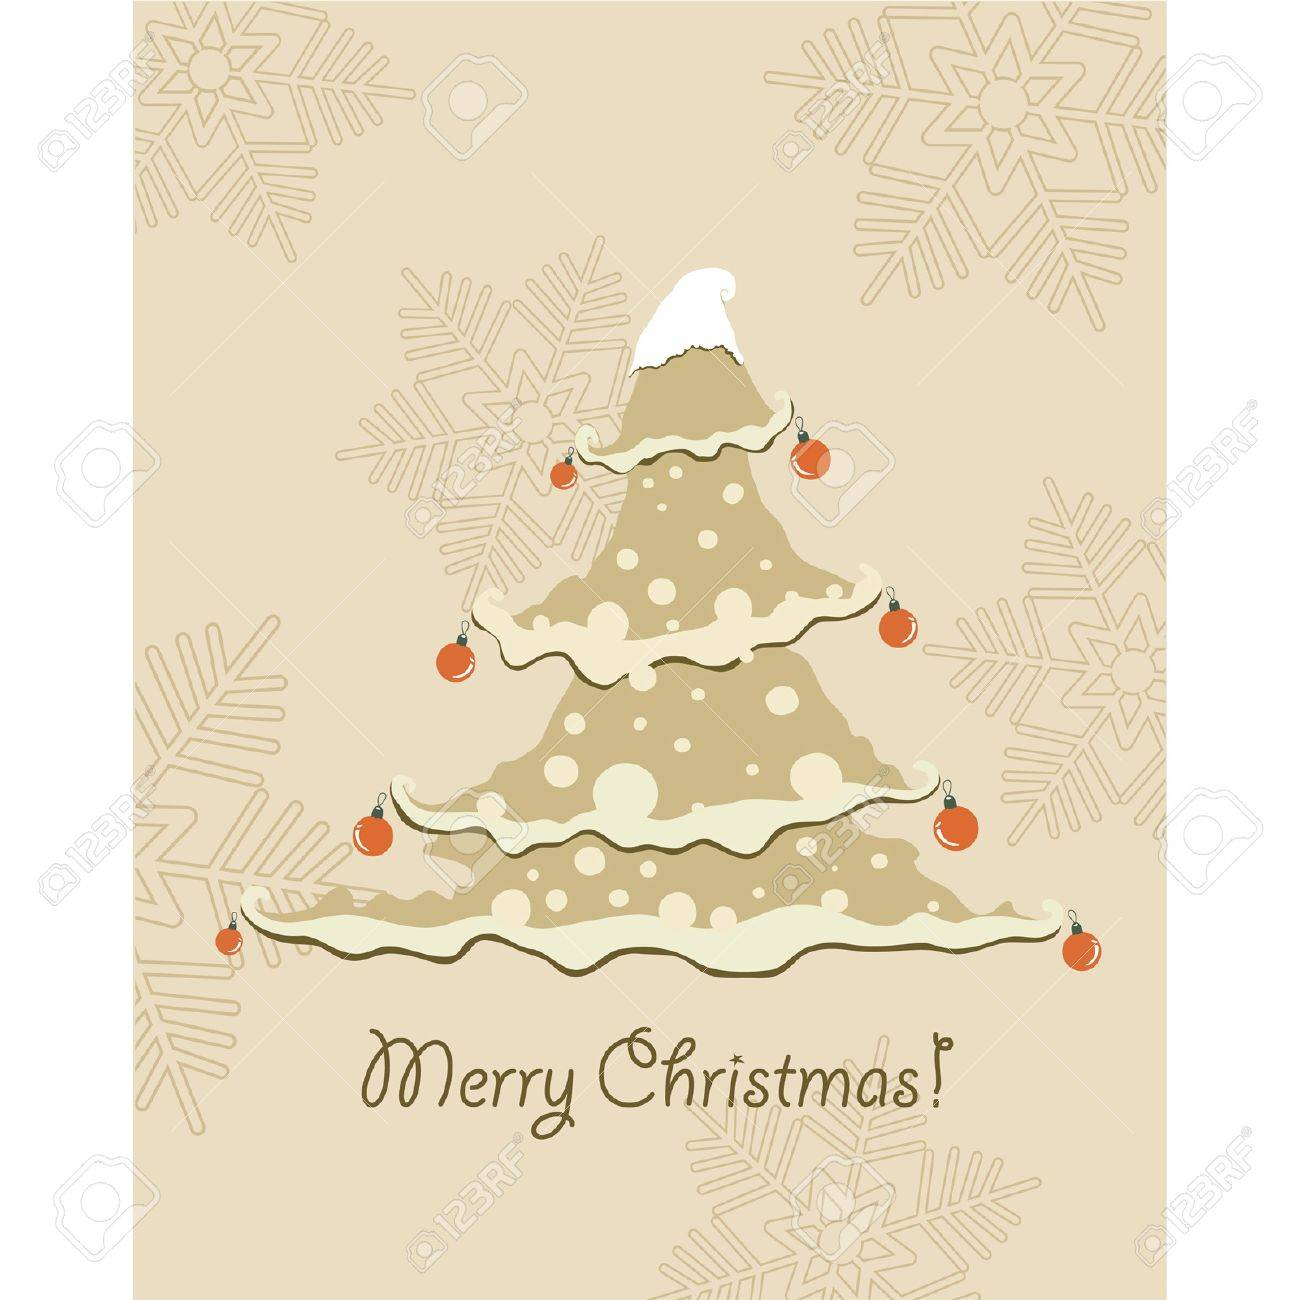 Vintage Christmas Card Beautiful Christmas Tree Illustration Royalty Free Cliparts Vectors And Stock Illustration Image 10566079